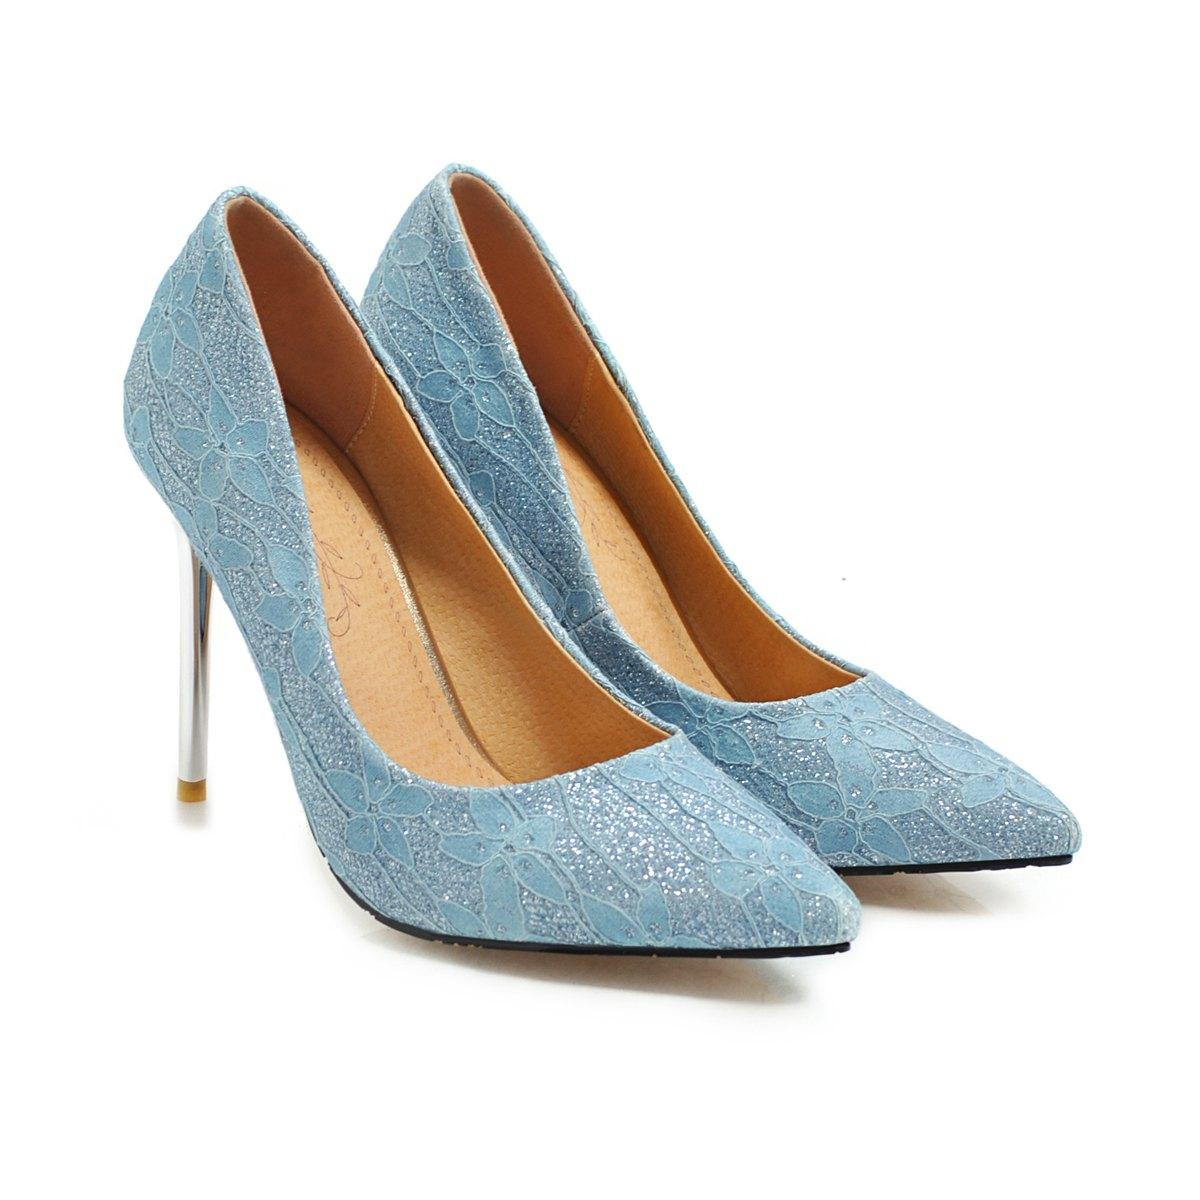 e8e04c33df1 Wholesale Sexy Stiletto Heel Sequins Fabric Pointed Toe Women Pumps 100mm  Fashion High Heels Shoes for Women Office Dress Shoes Large Size